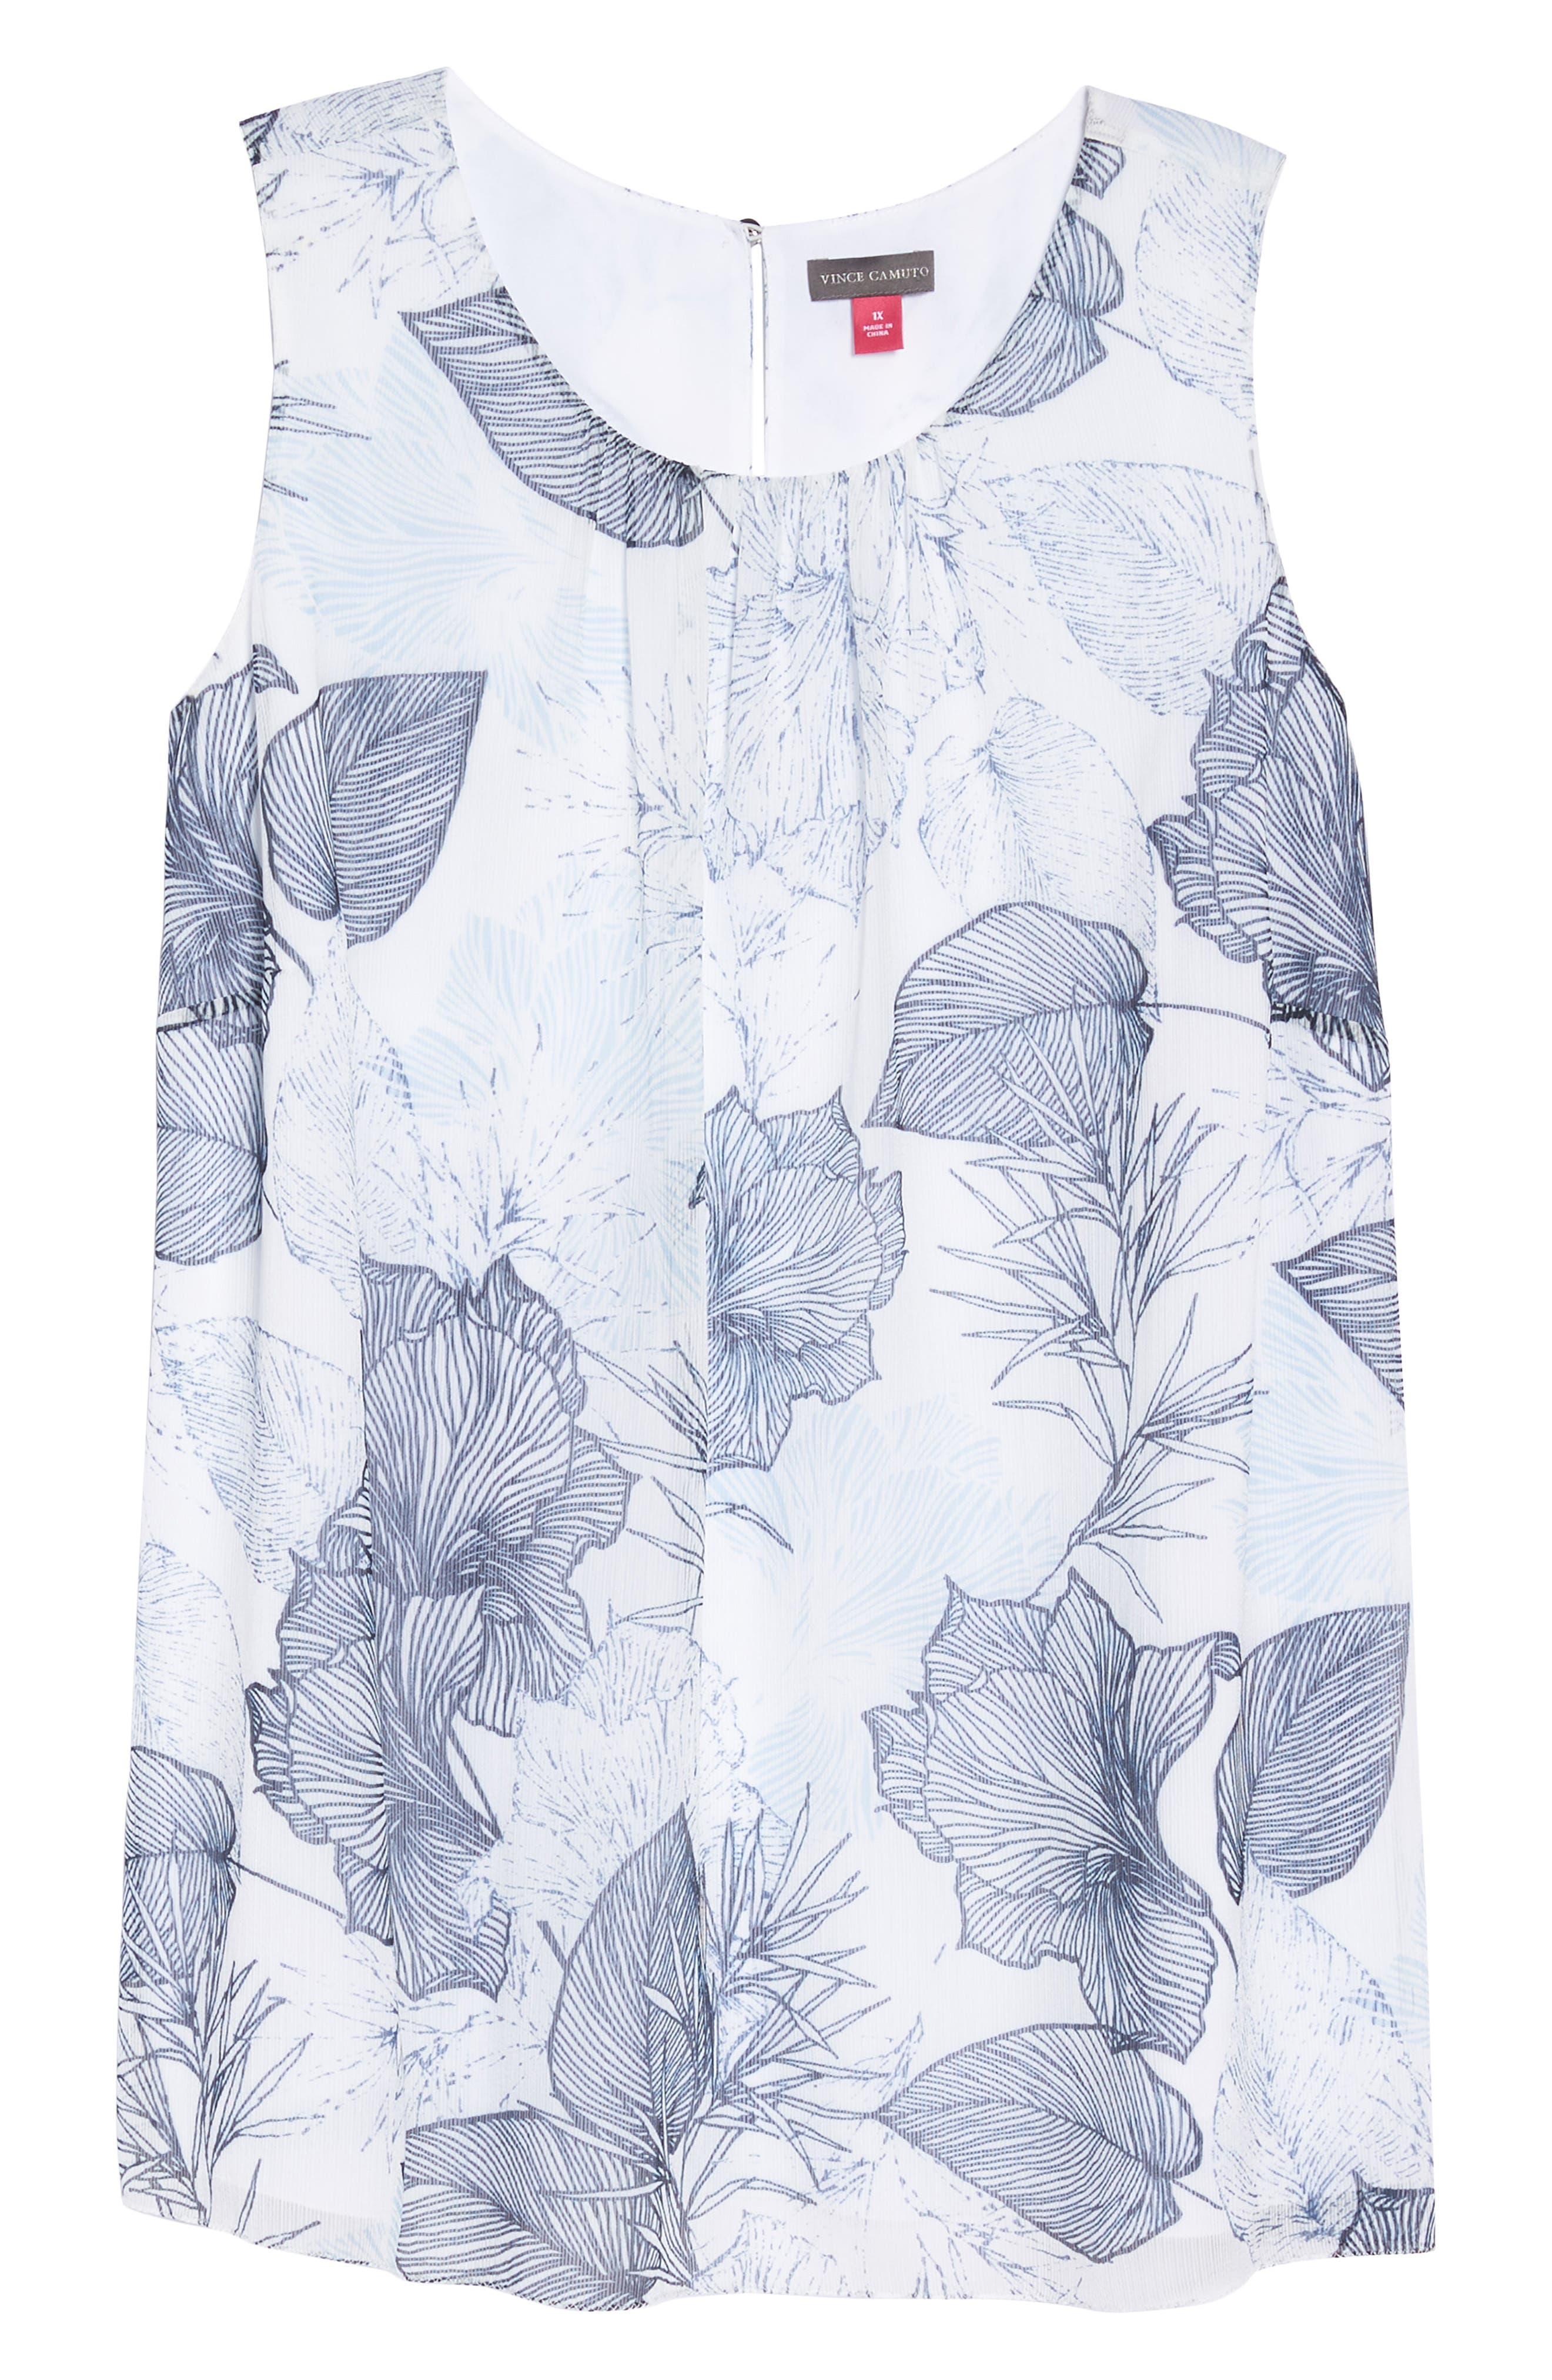 Etched Island Floral Blouse,                             Alternate thumbnail 6, color,                             Ultra White